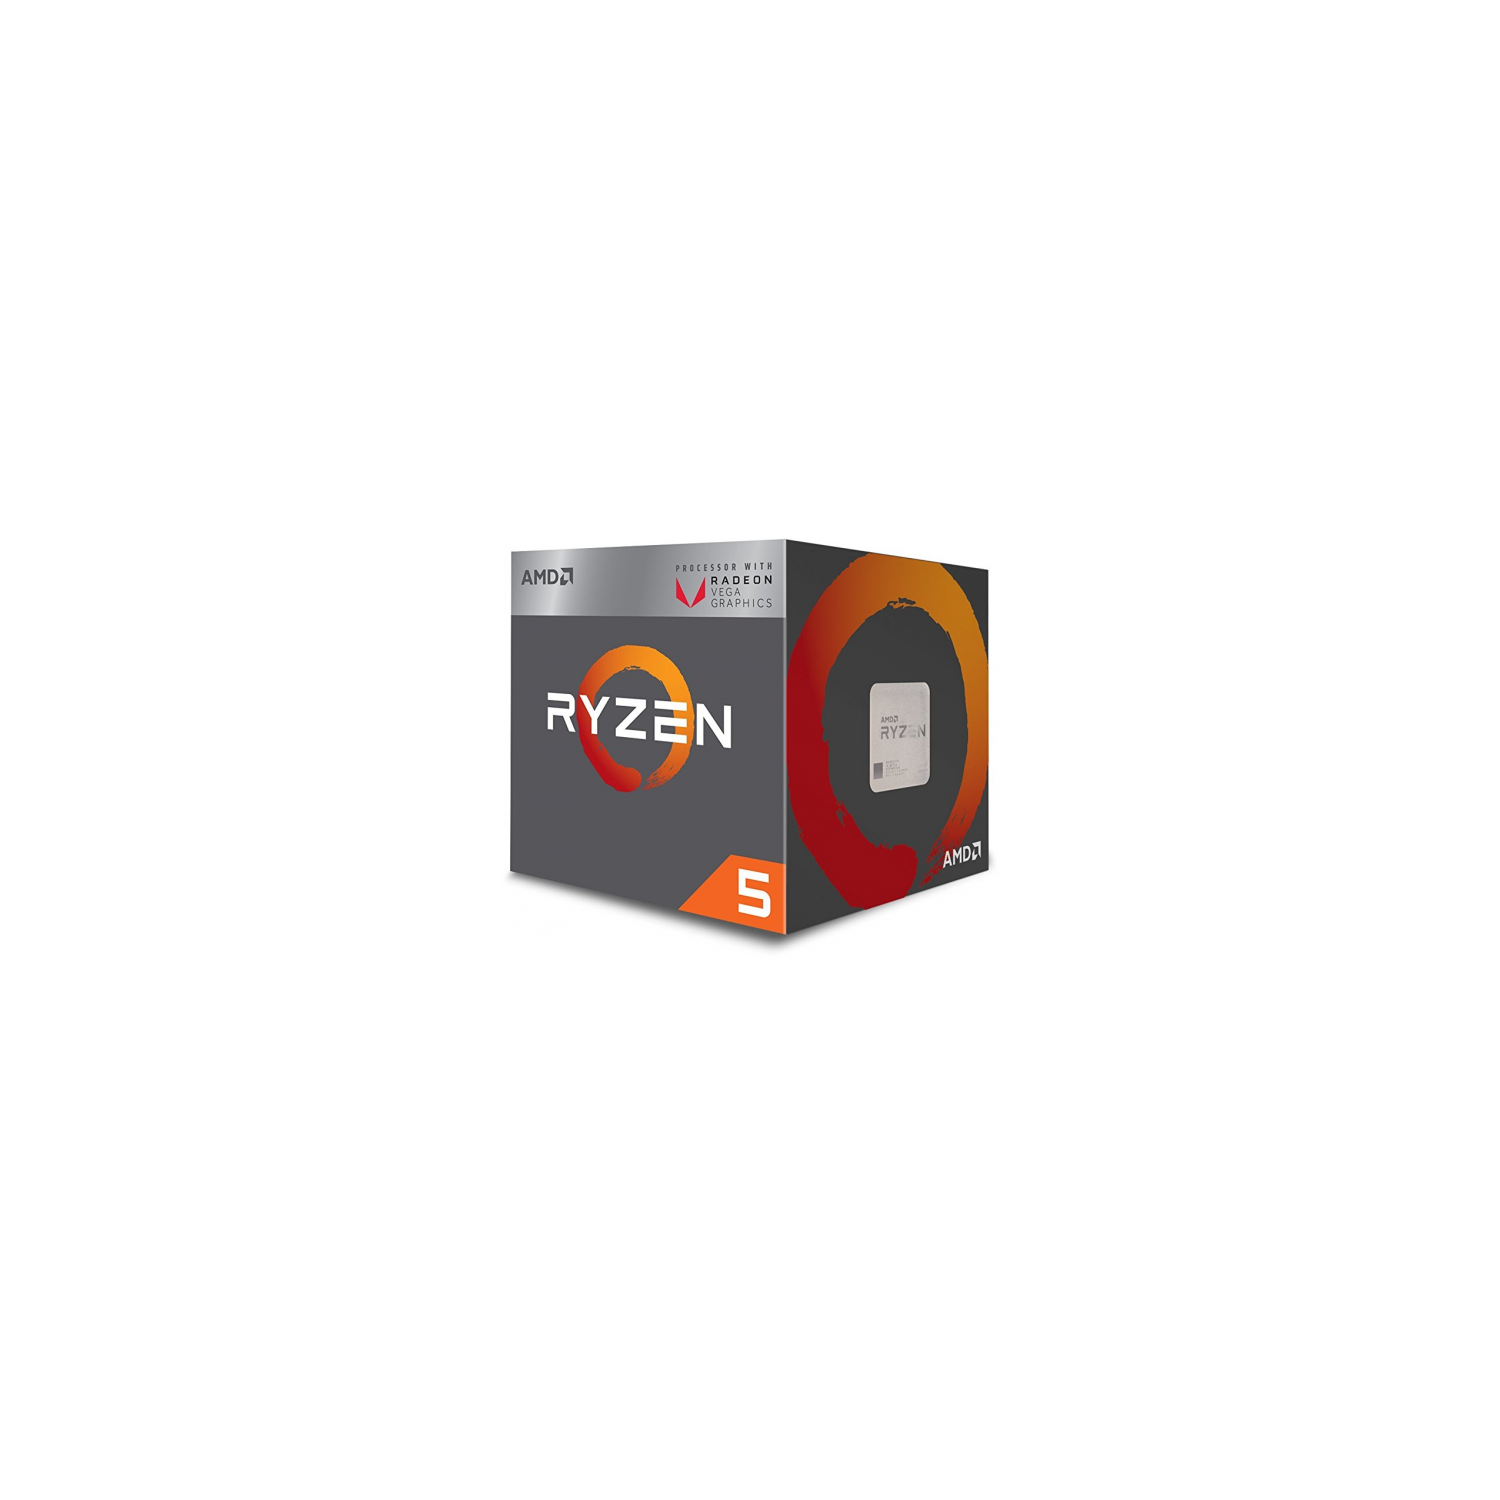 Amd Ryzen 5 2400g Processor With Radeon Rx Vega 11 Graphics Cpu Computer Processors Best Buy Canada